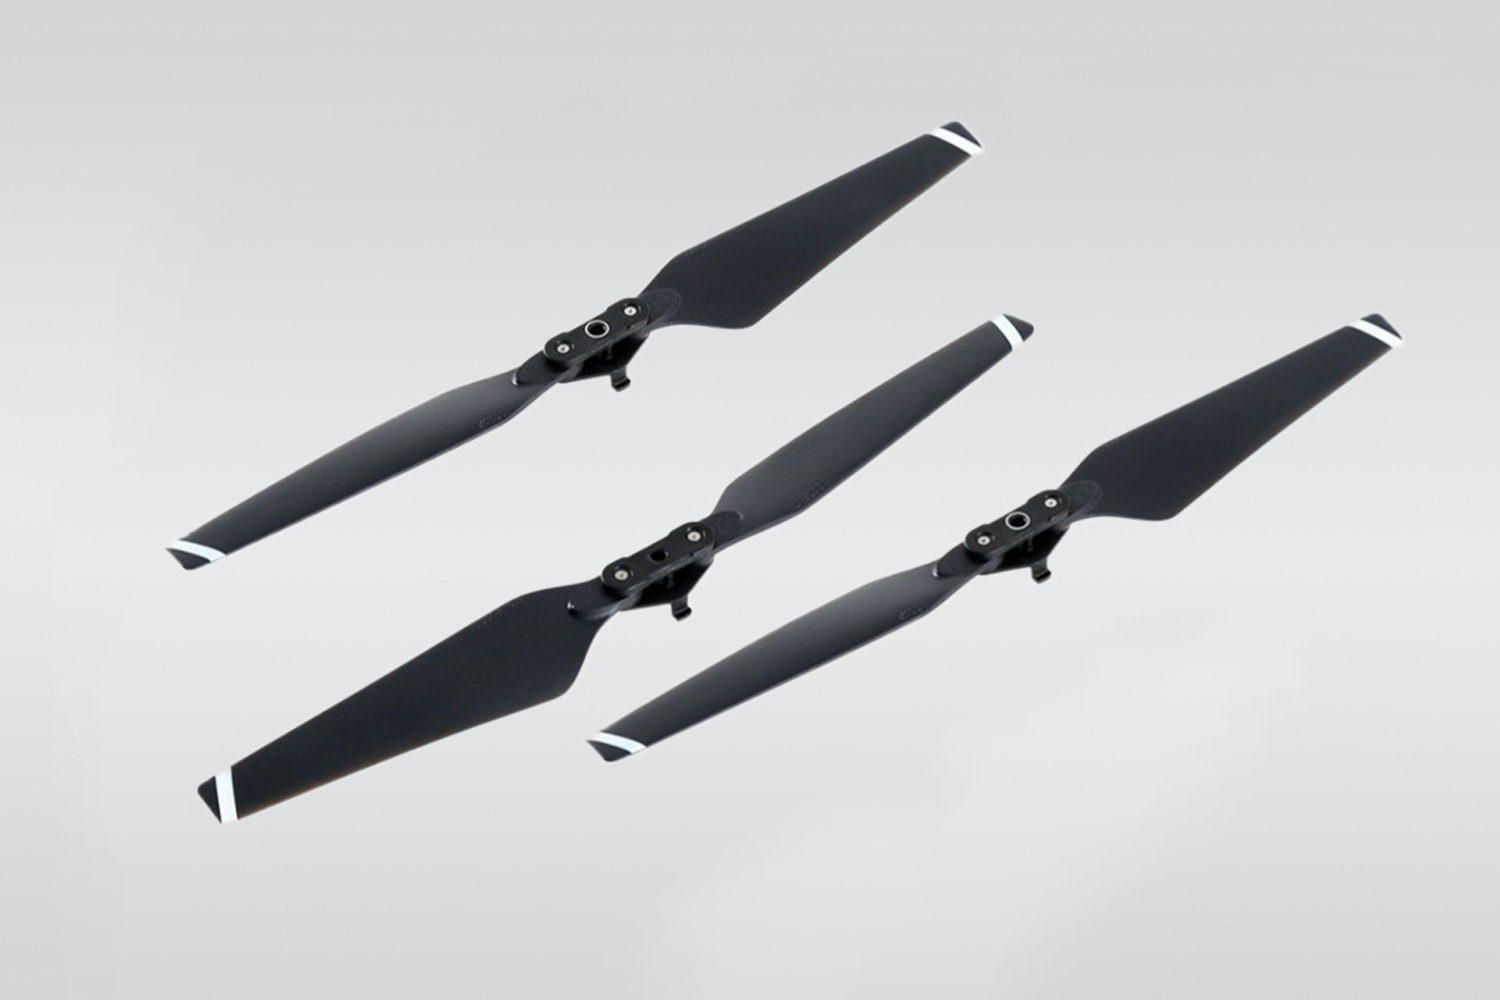 (3) 8330 quick-release folding propellers for Mavic drone